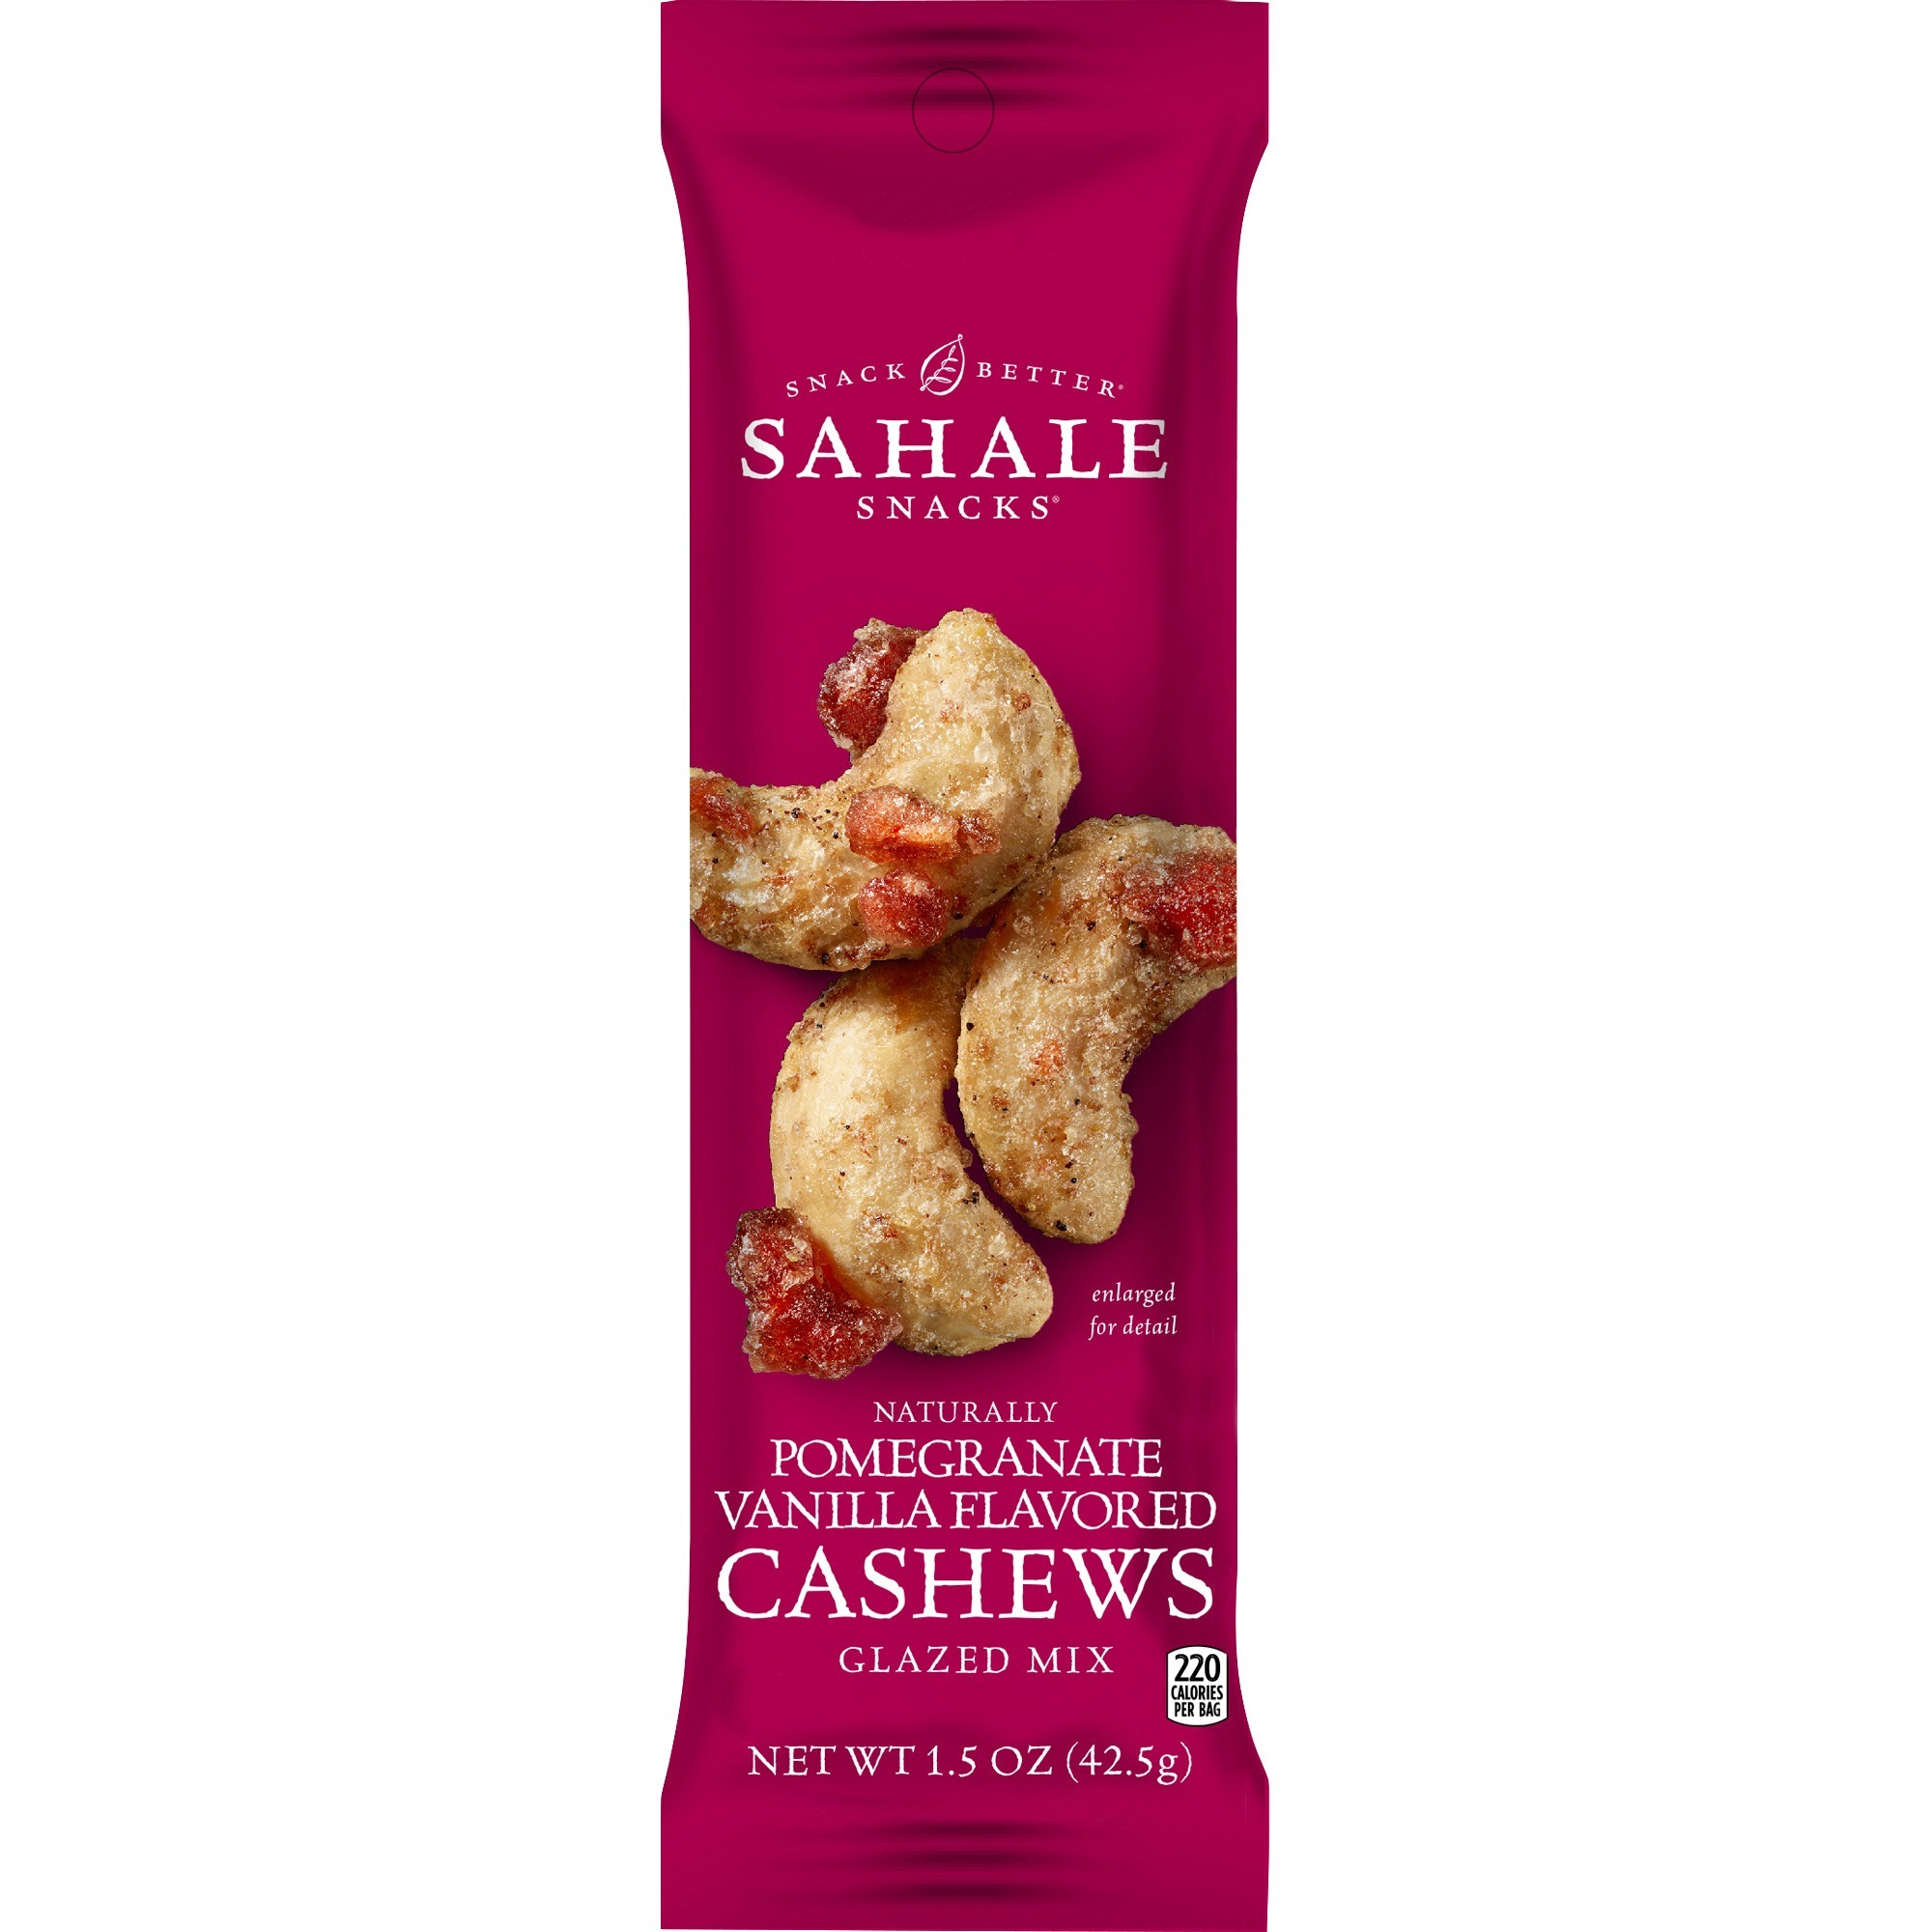 combat menopause on the go, Sahale Snacks Pomegranate Vanilla Flavored Cashews, red pouch